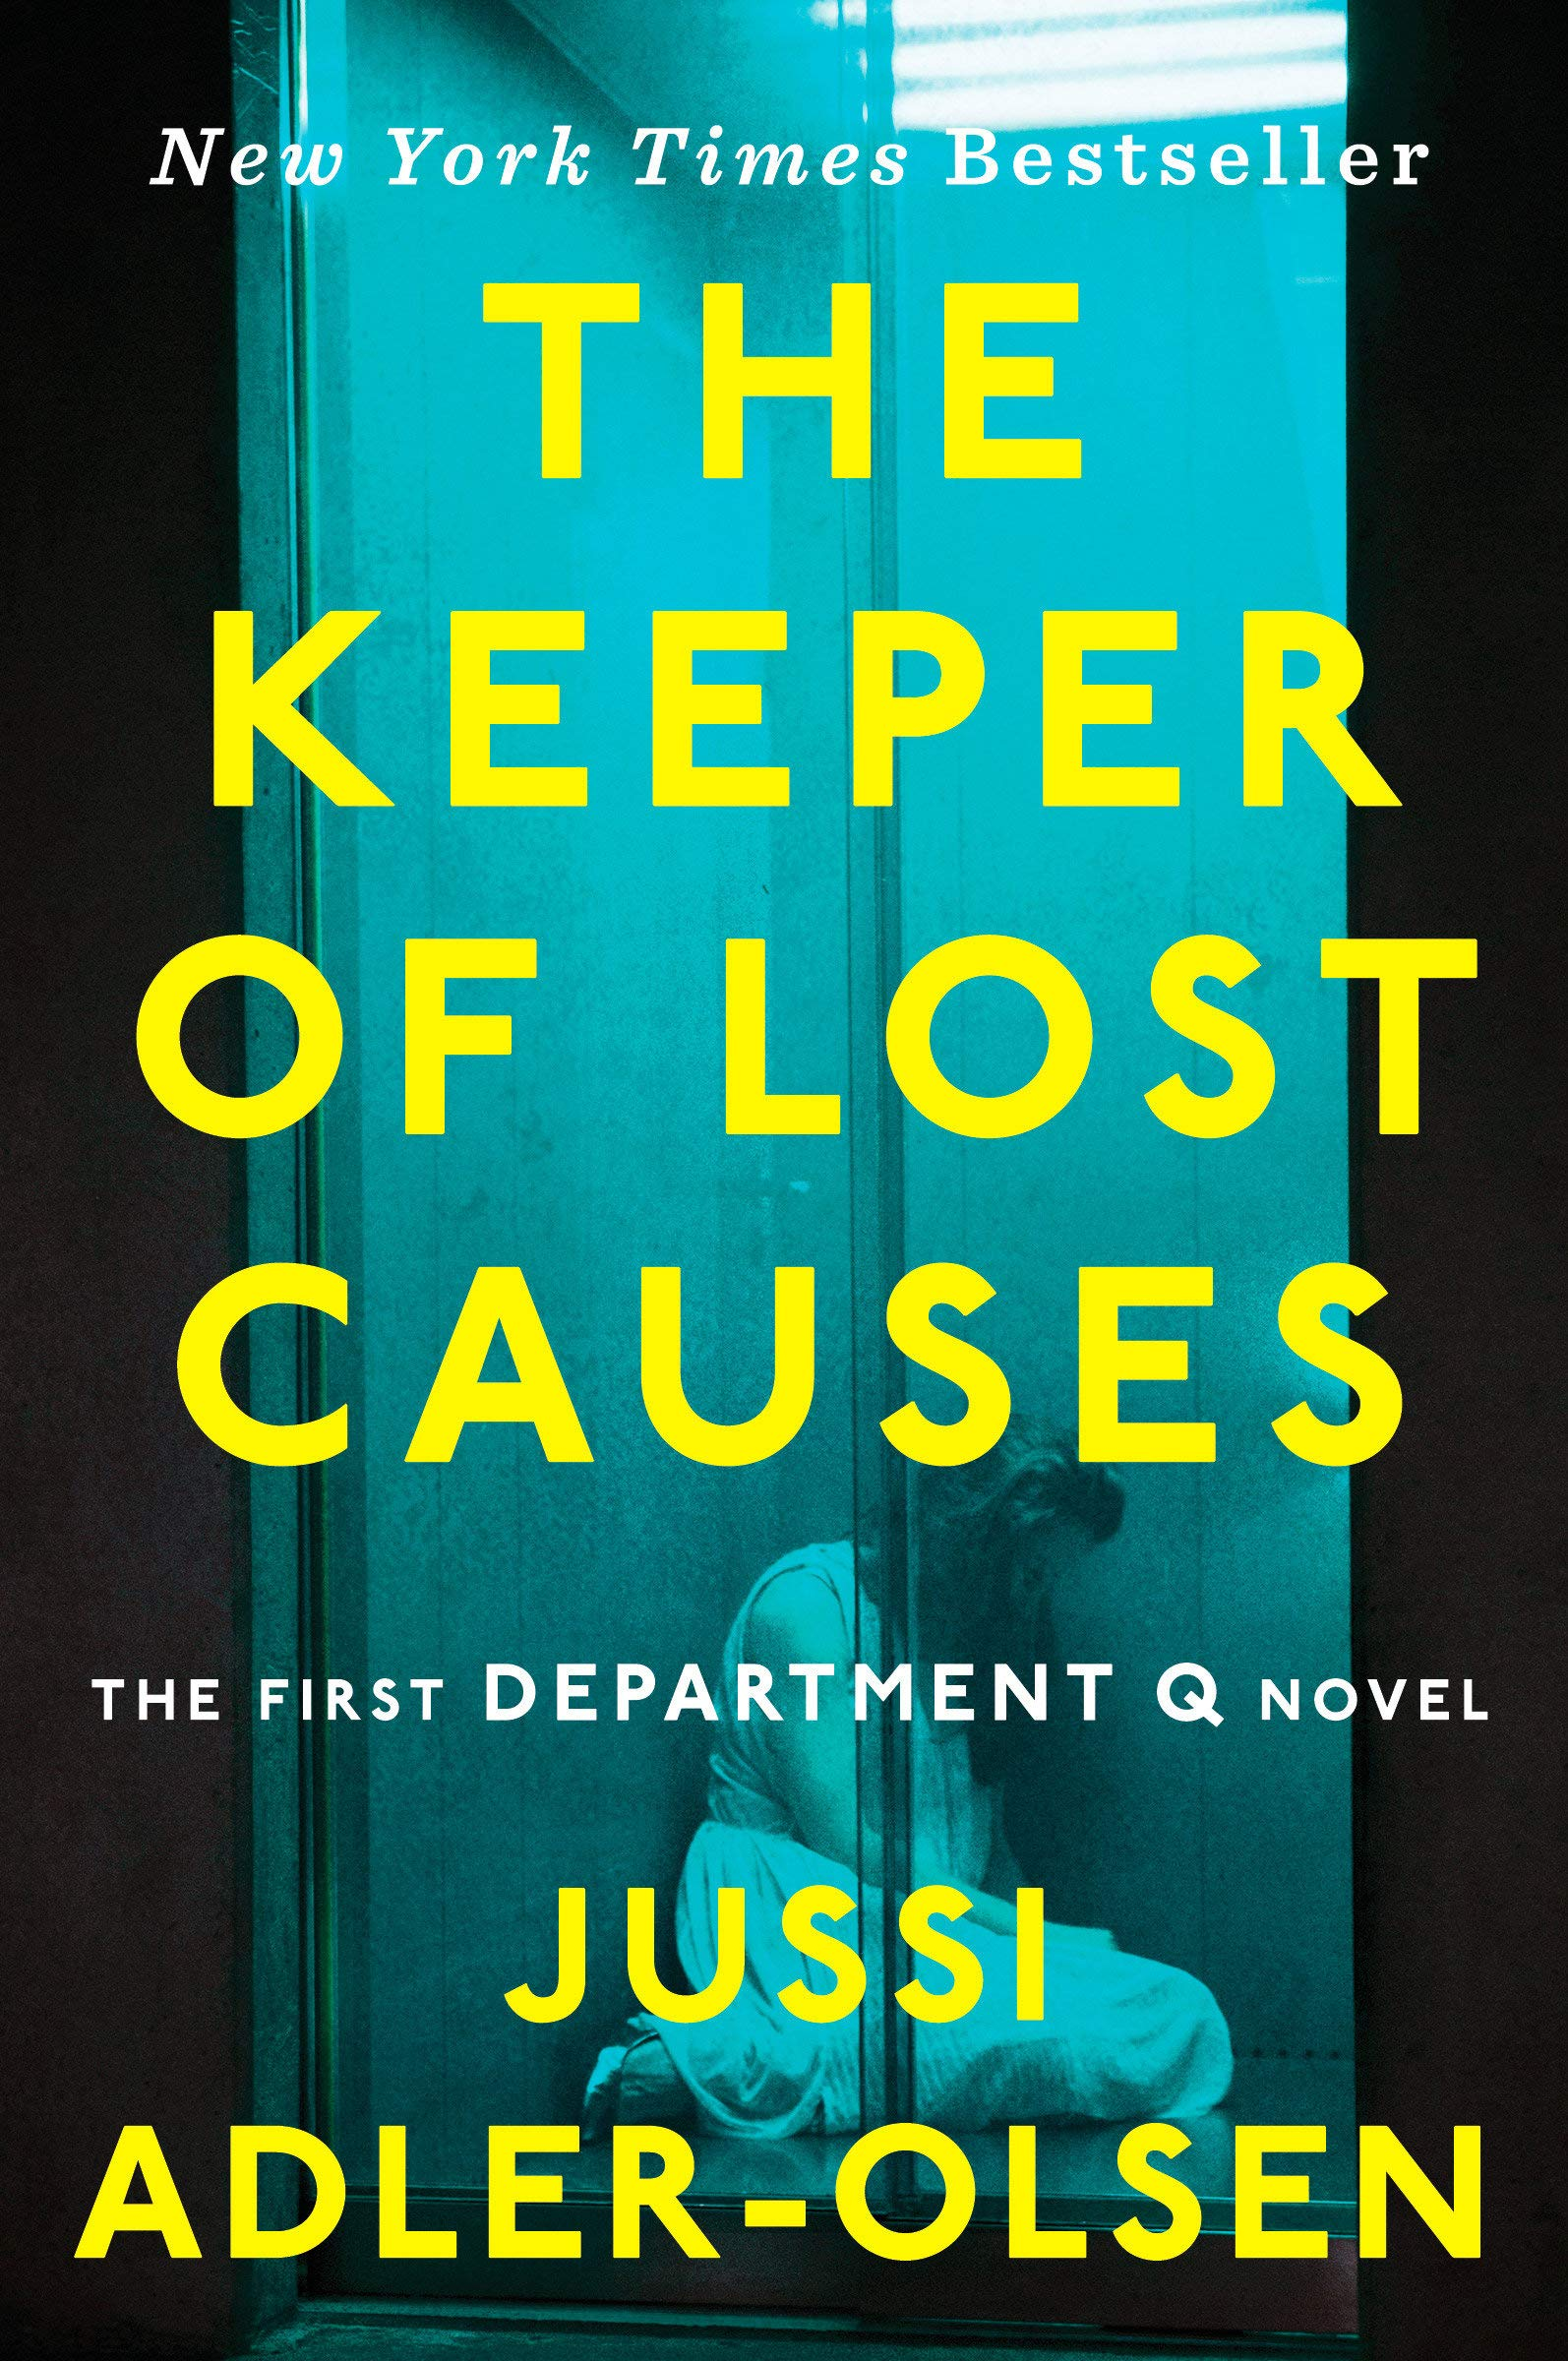 Amazon Com The Keeper Of Lost Causes The First Department Q Novel A Department Q Novel 9780452297906 Jussi Adler Olsen Lisa Hartford Books